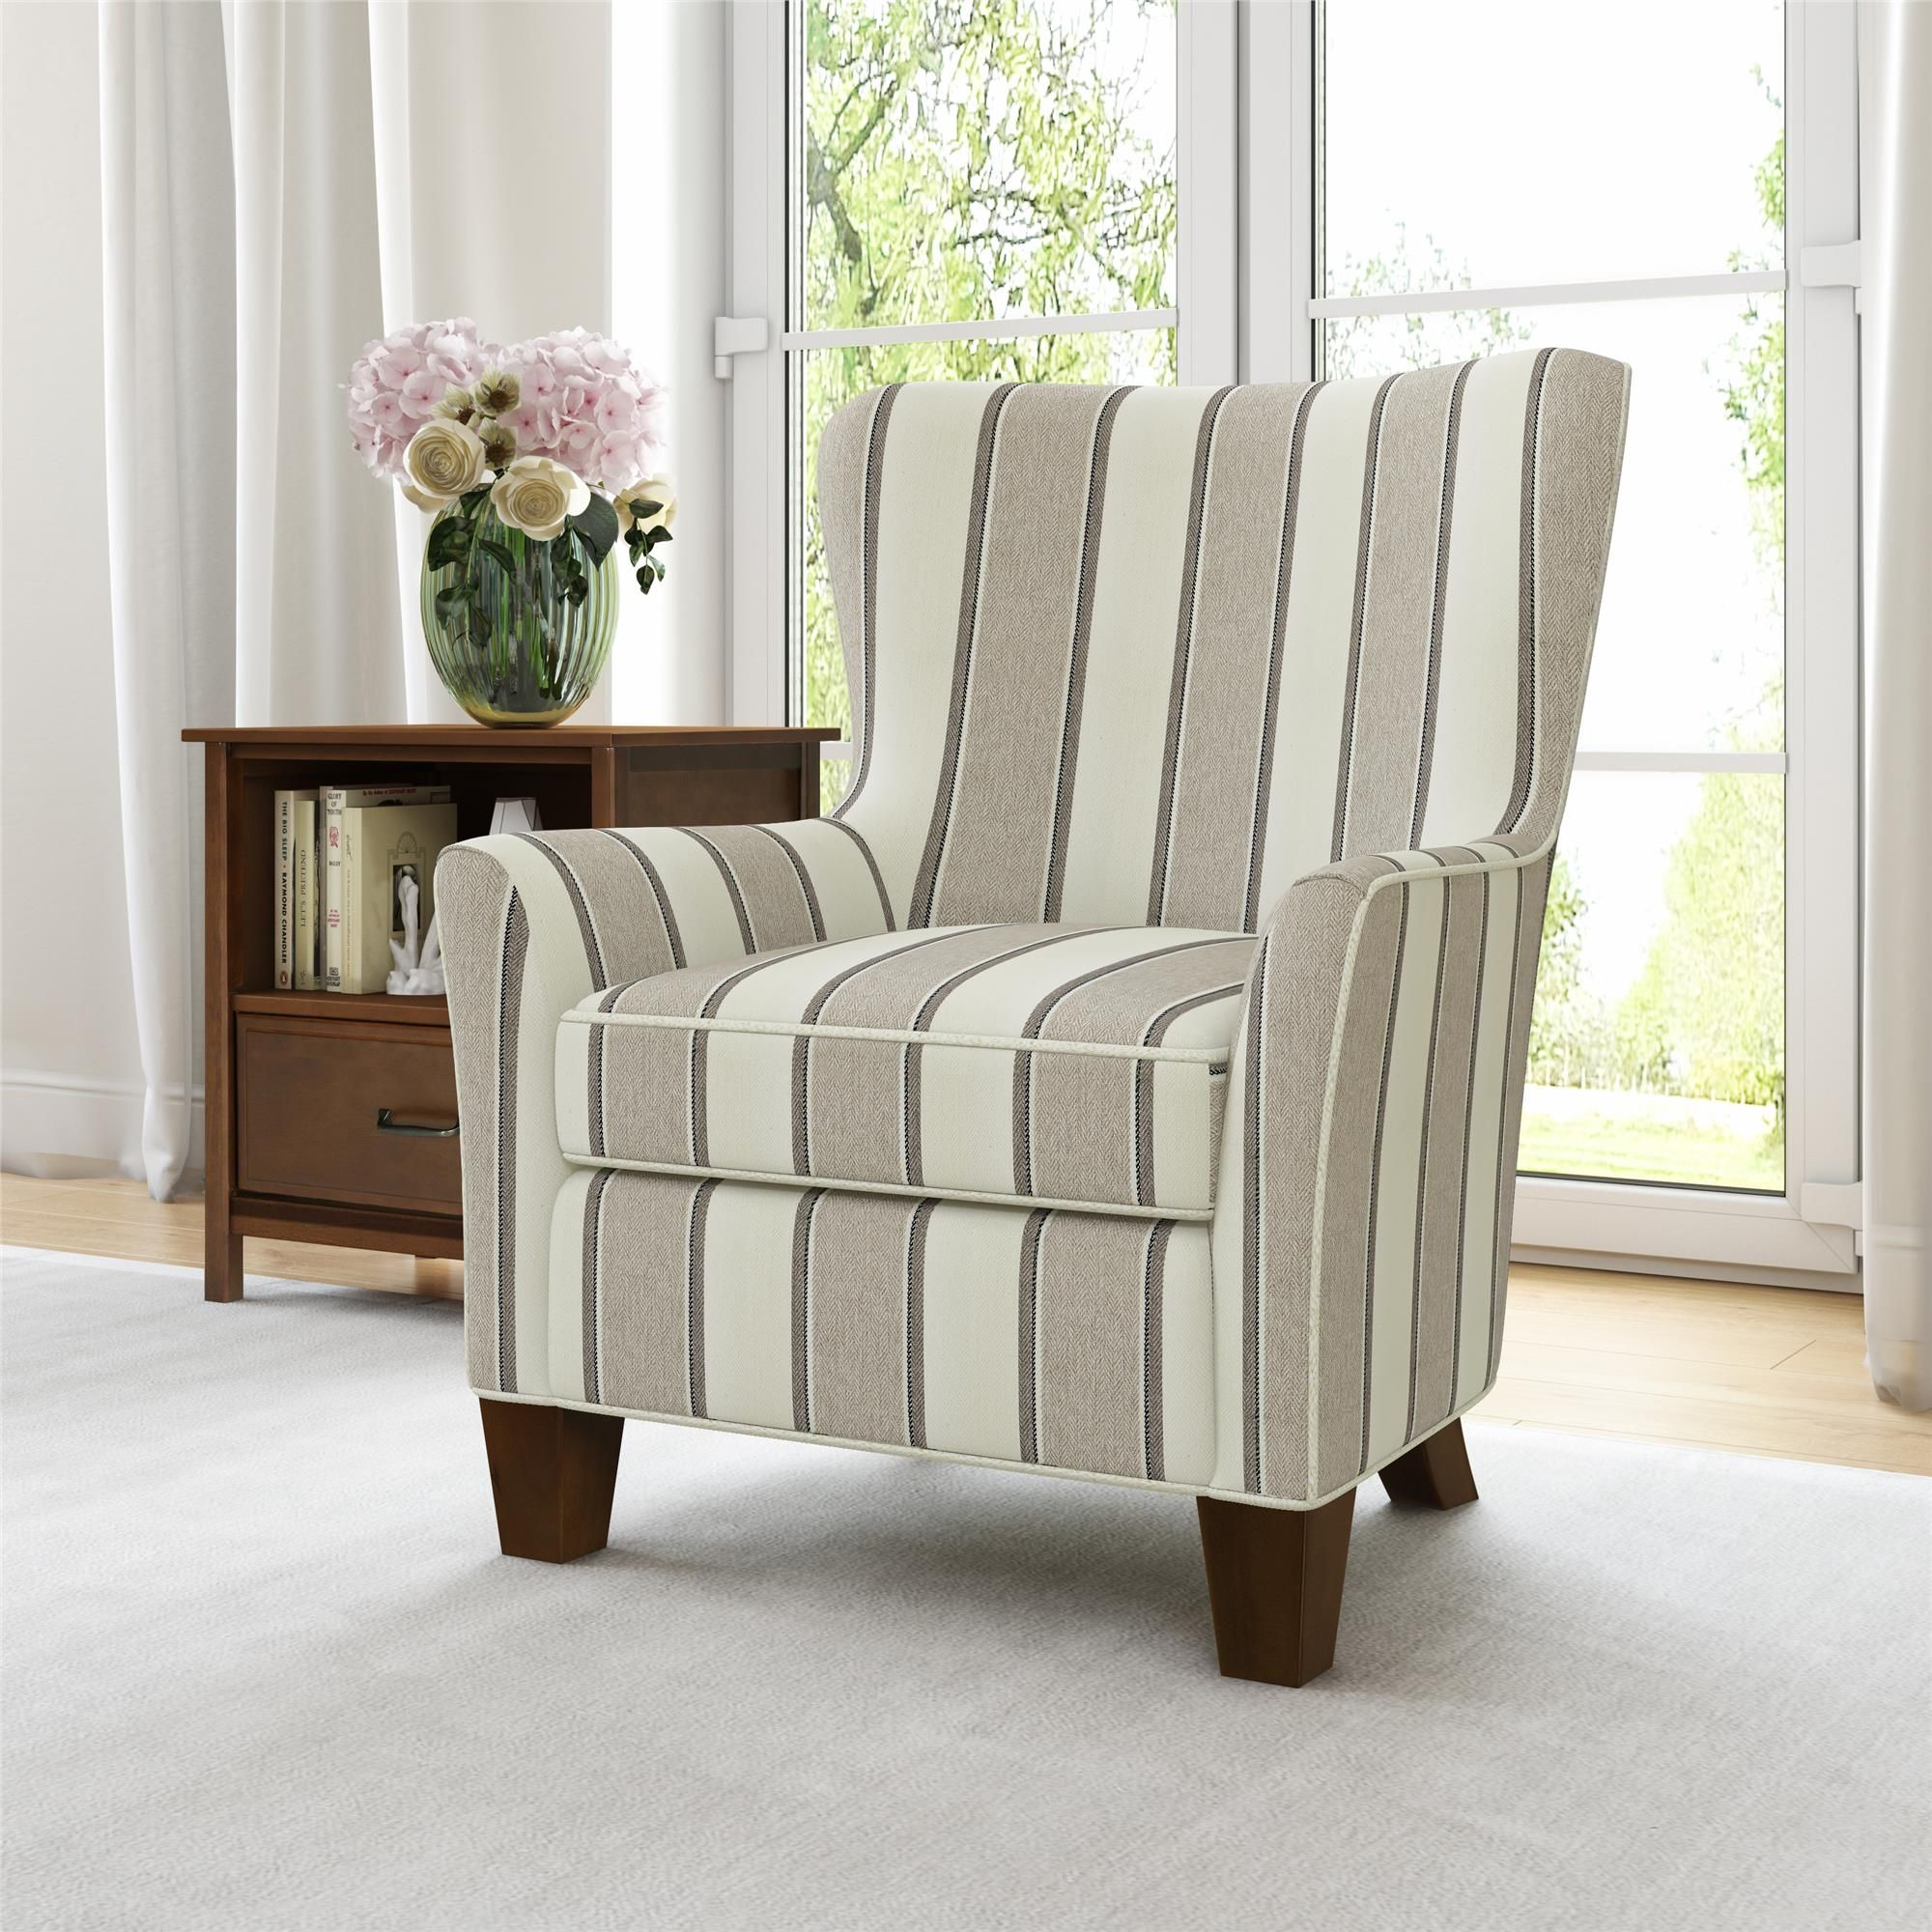 Home In 2020 Accent Chairs Ottoman Set Chair And Ottoman